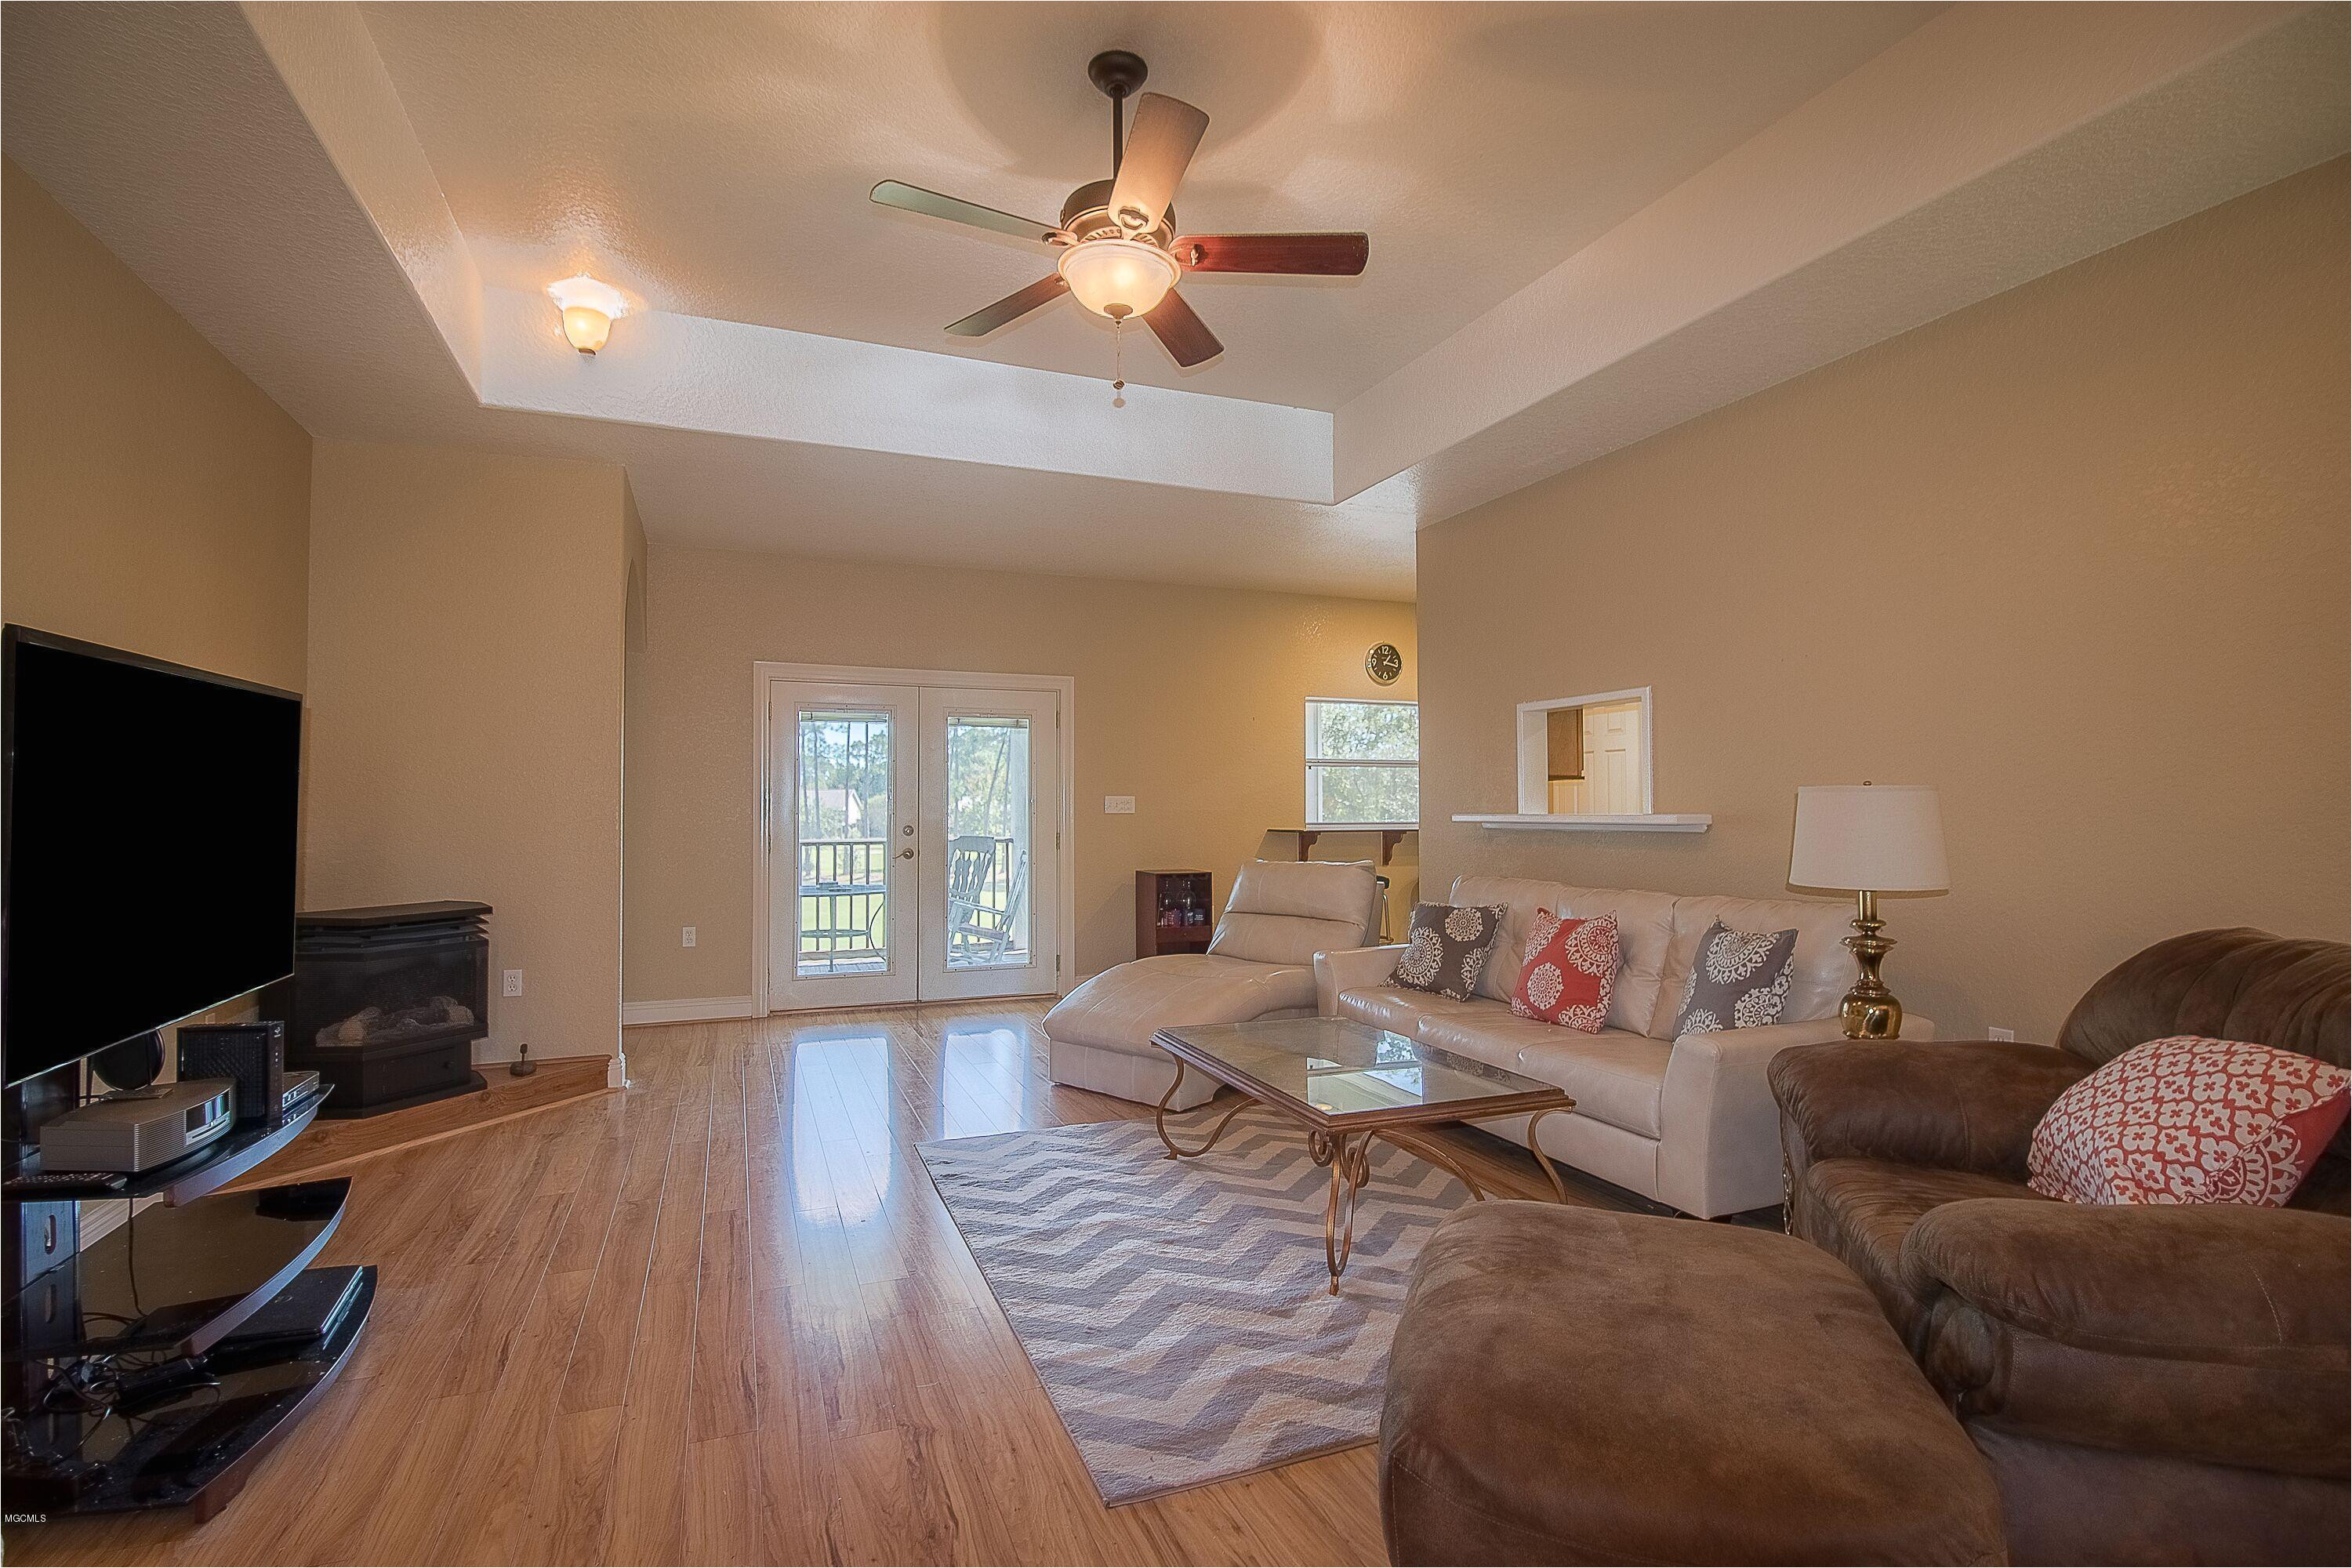 122 forest st pass christian ms mls 340114 julie morris 228 669 0885 gulfport ms homes for sale